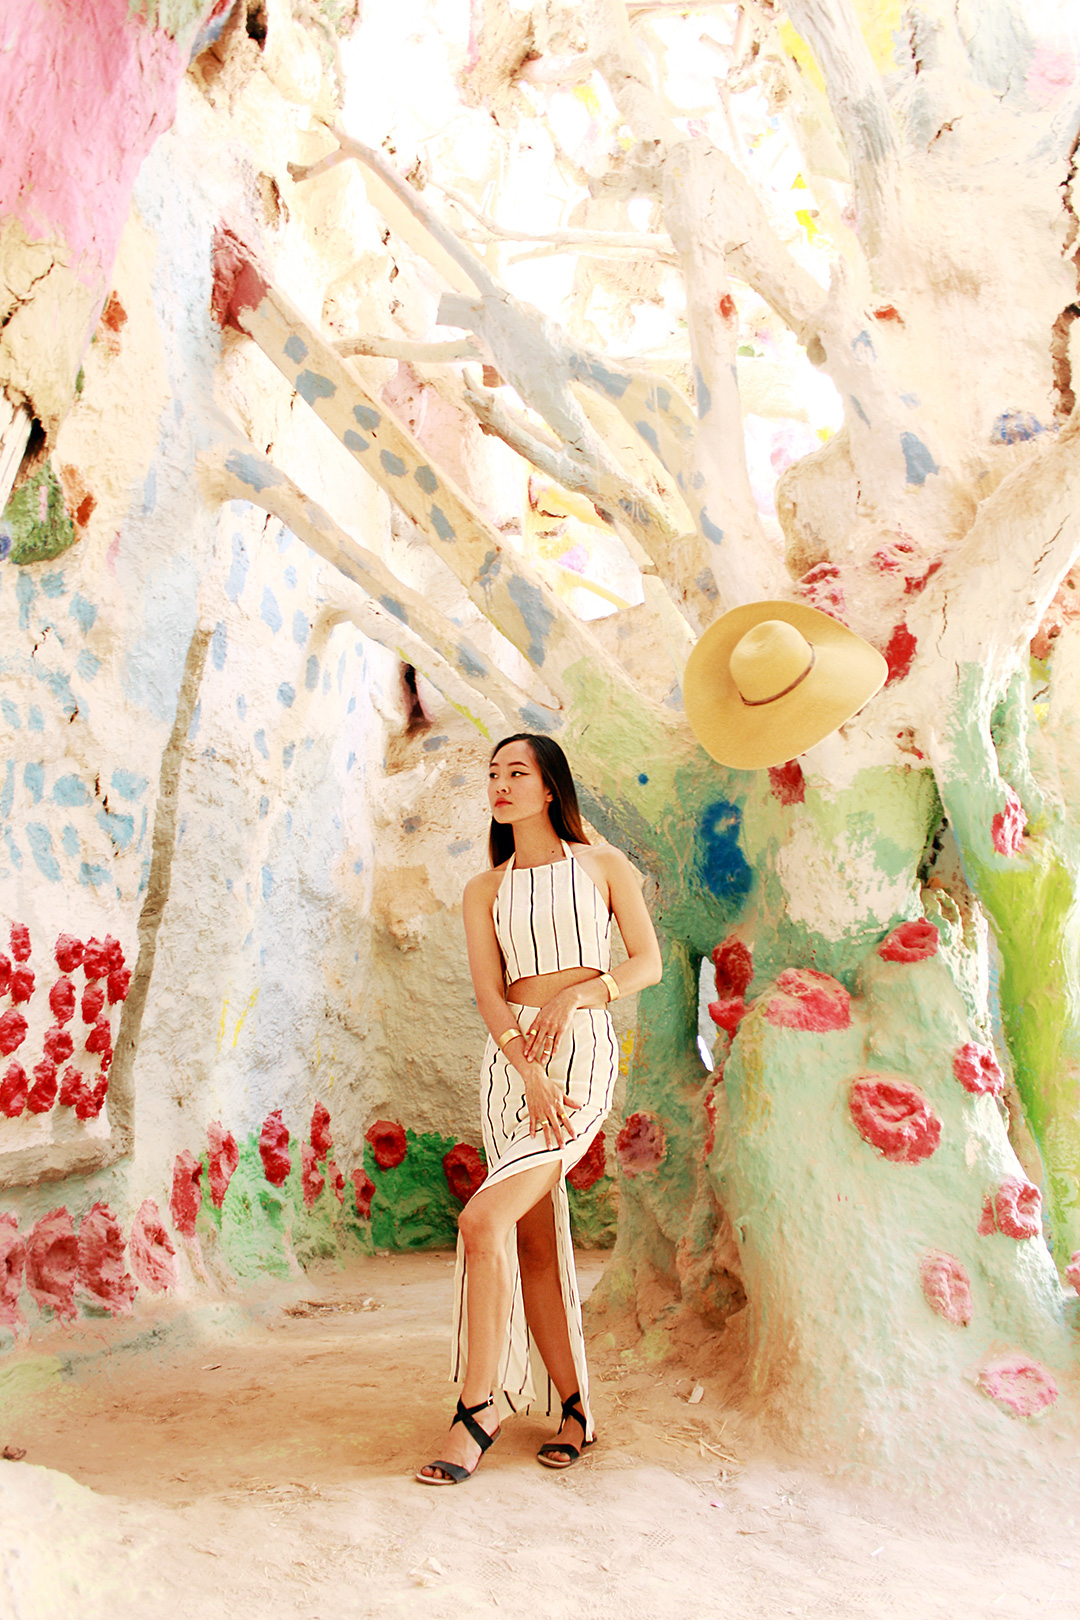 One of the domed interior views of Salvation Mountain